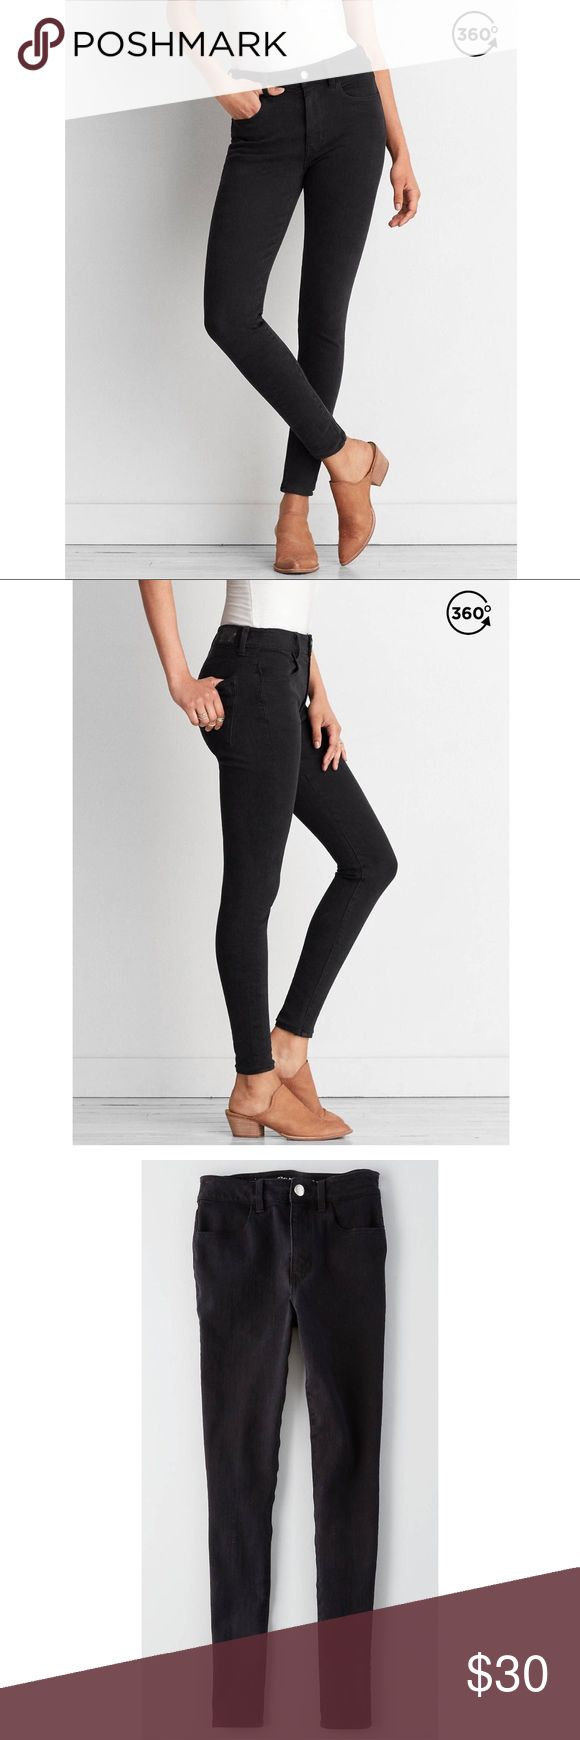 """🆕American Eagle 🦅Hi-Rise American Eagle X4 Hi-Rise Black Jeggings Power Fit 360, Super Stretch denim Revolutionary 4-way stretch for advanced body contouring that won't bag out Stretch moves both up & down and side to side;Vertical stretch is designed to lift the butt and help contour the leg High 10 1/8"""" rise 14 3/8"""" back rise 9 3/4"""" leg opening for a legging-like fit Material is  71% Cotton, 14% Viscose, 11% Polyester, 4% Elastane American Eagle Outfitters Jeans Skinny"""